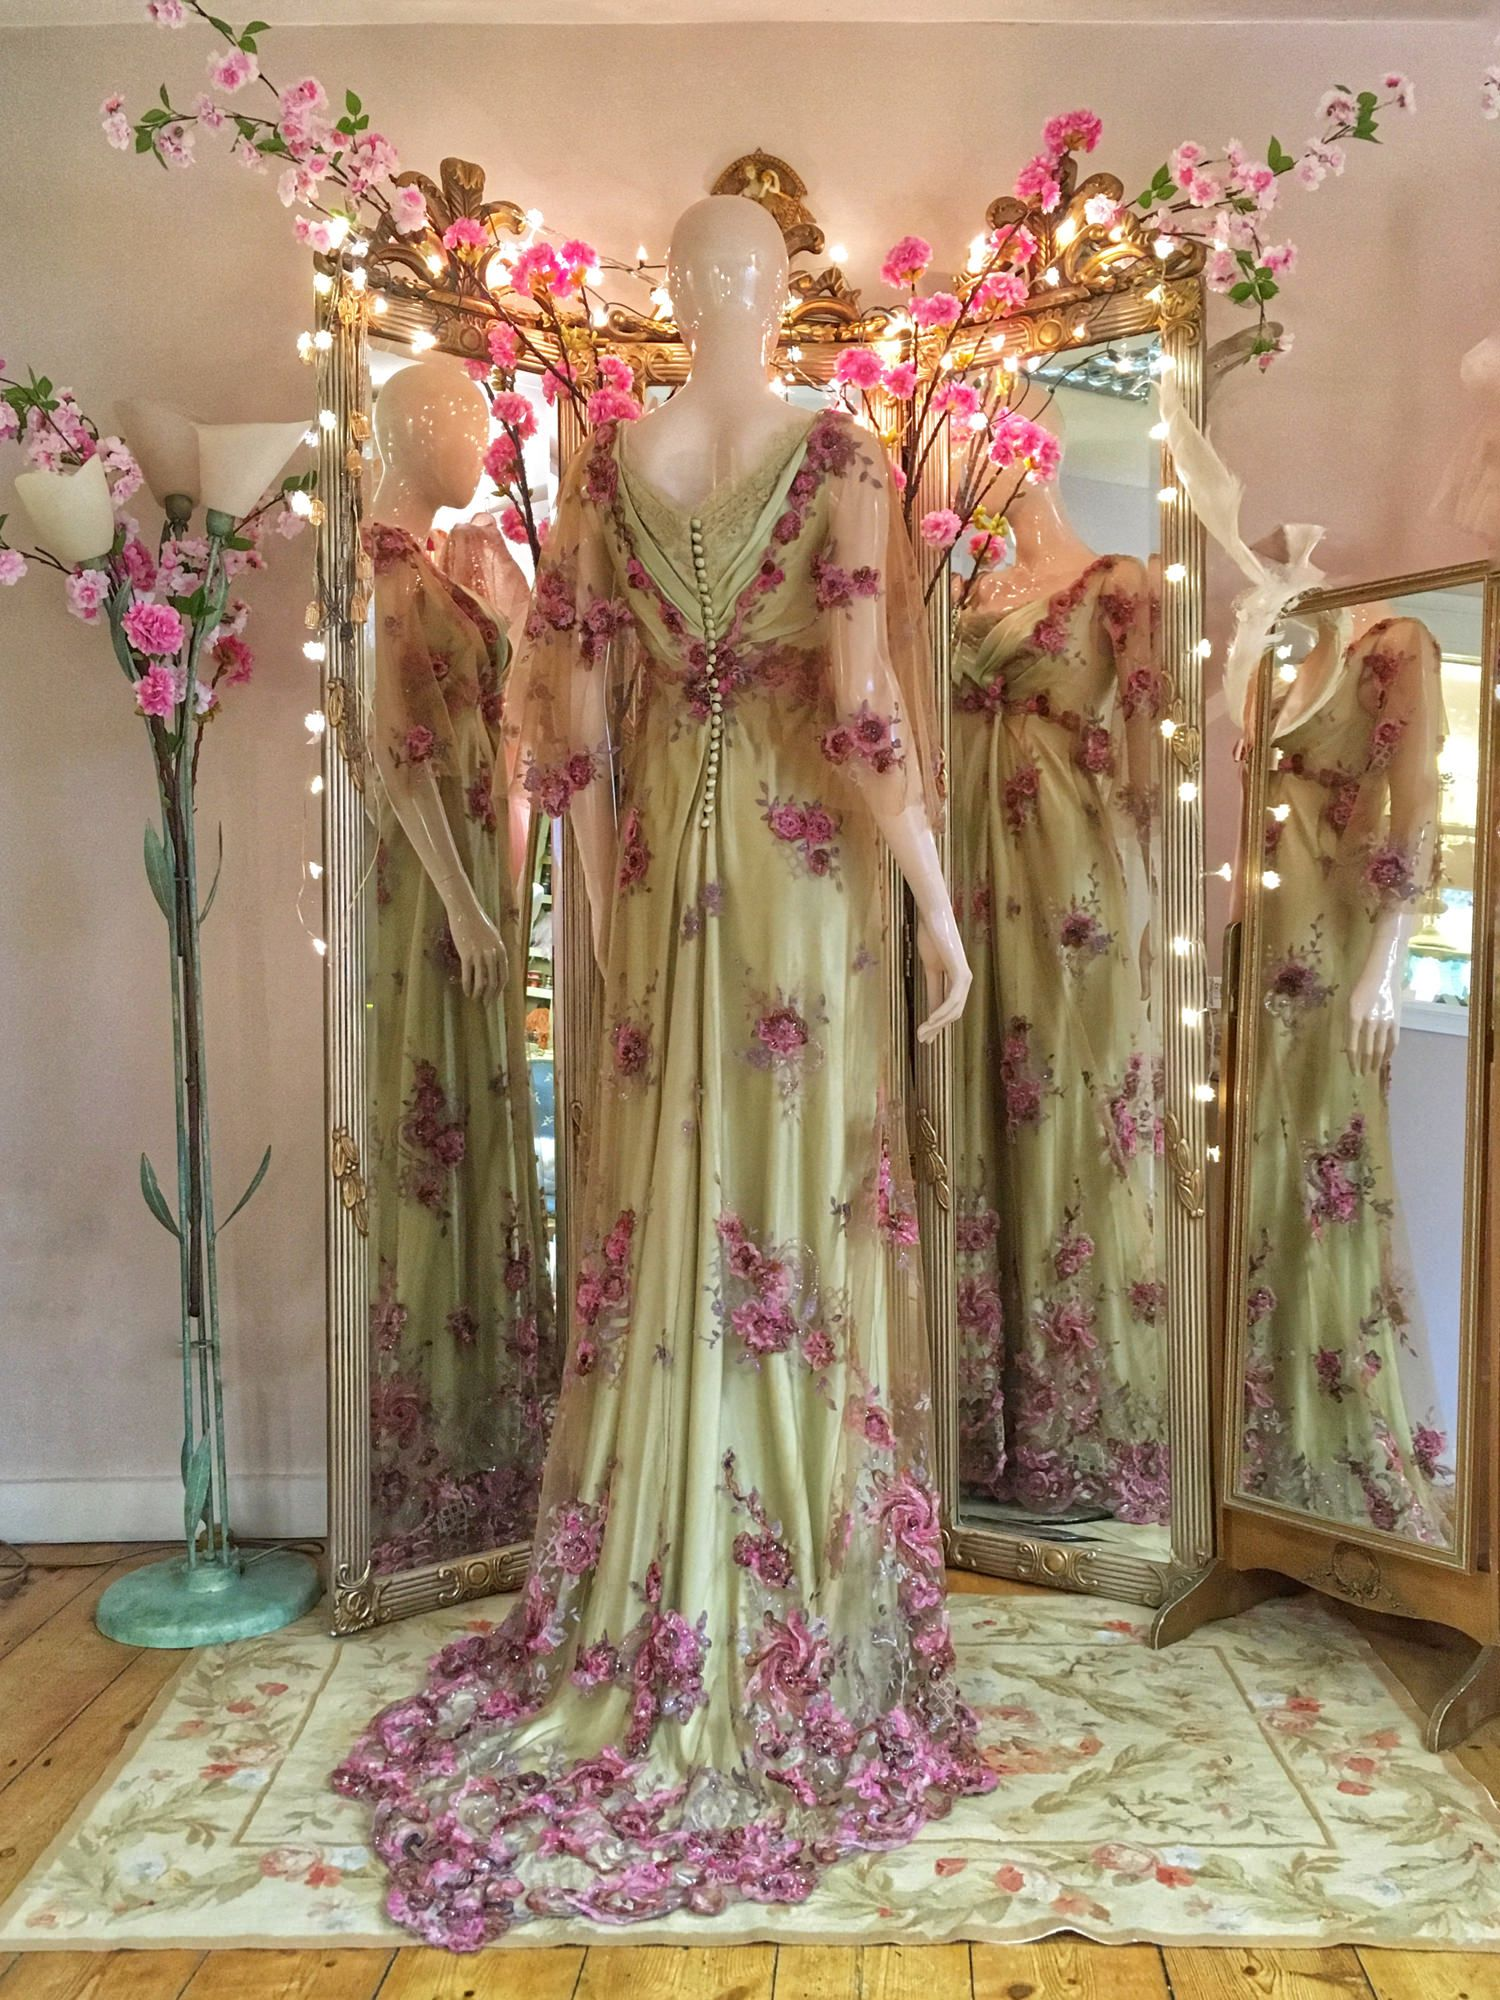 8b6e155be06  Floral  embroidered  tulle  BelleEpoque inspired  colourful  wedding or   evening  dress by Joanne Fleming Design